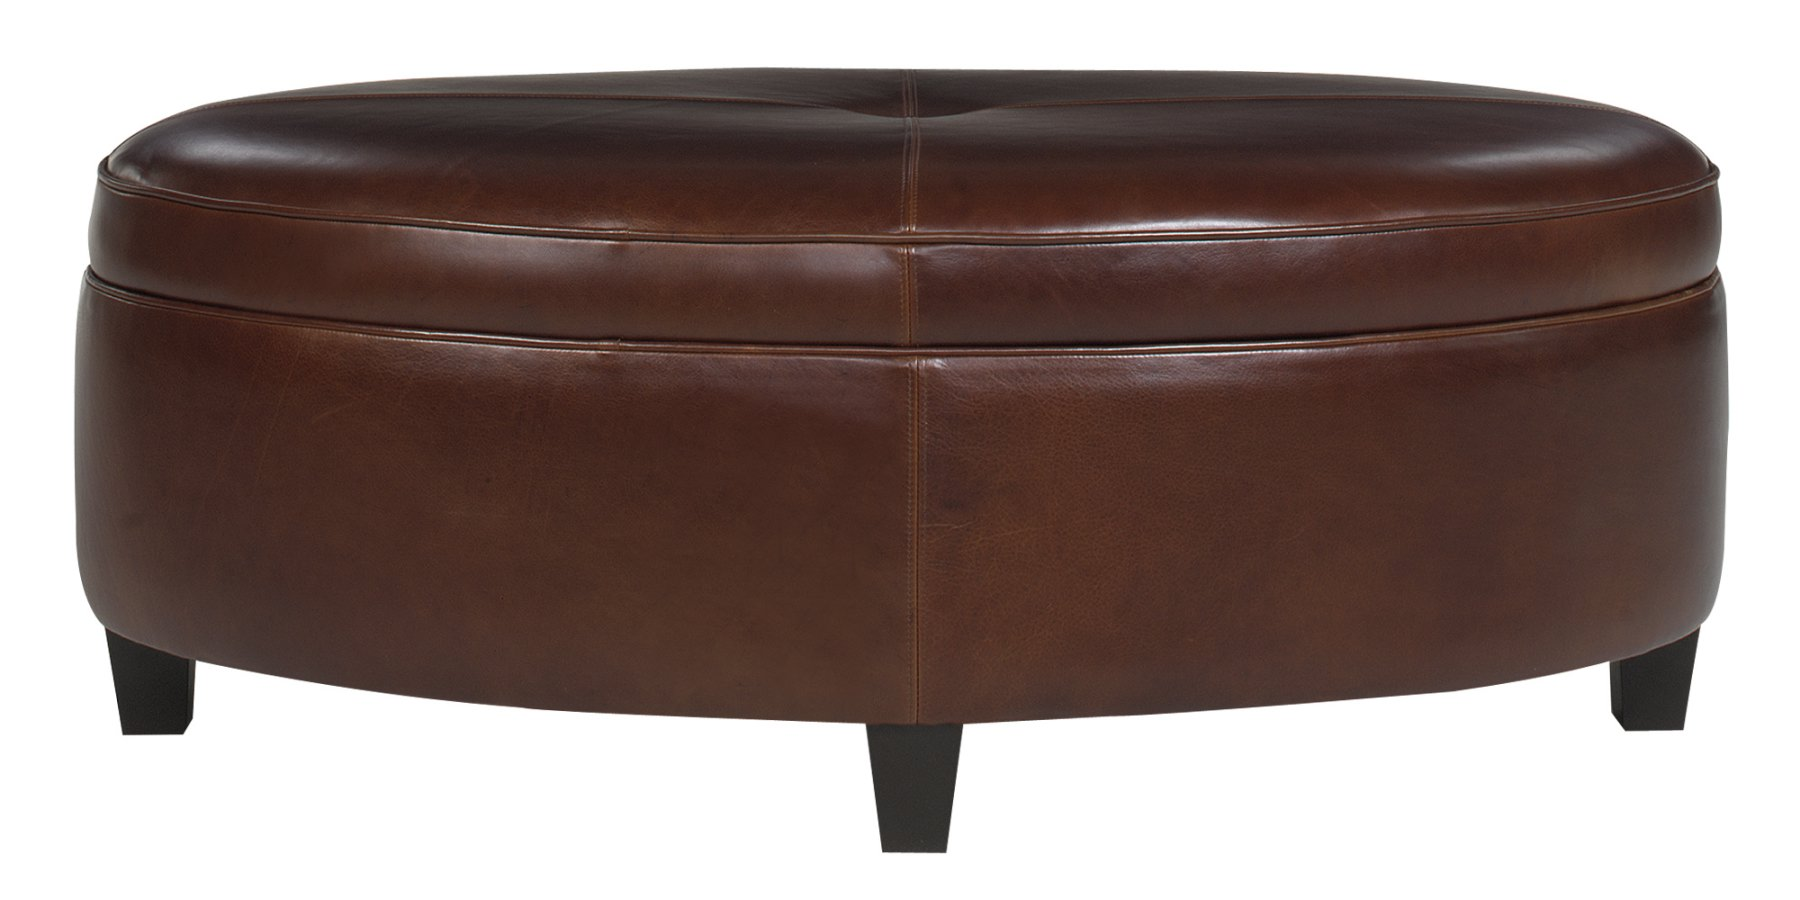 Oval Ottoman Coffee Table With Storage Club Furniture